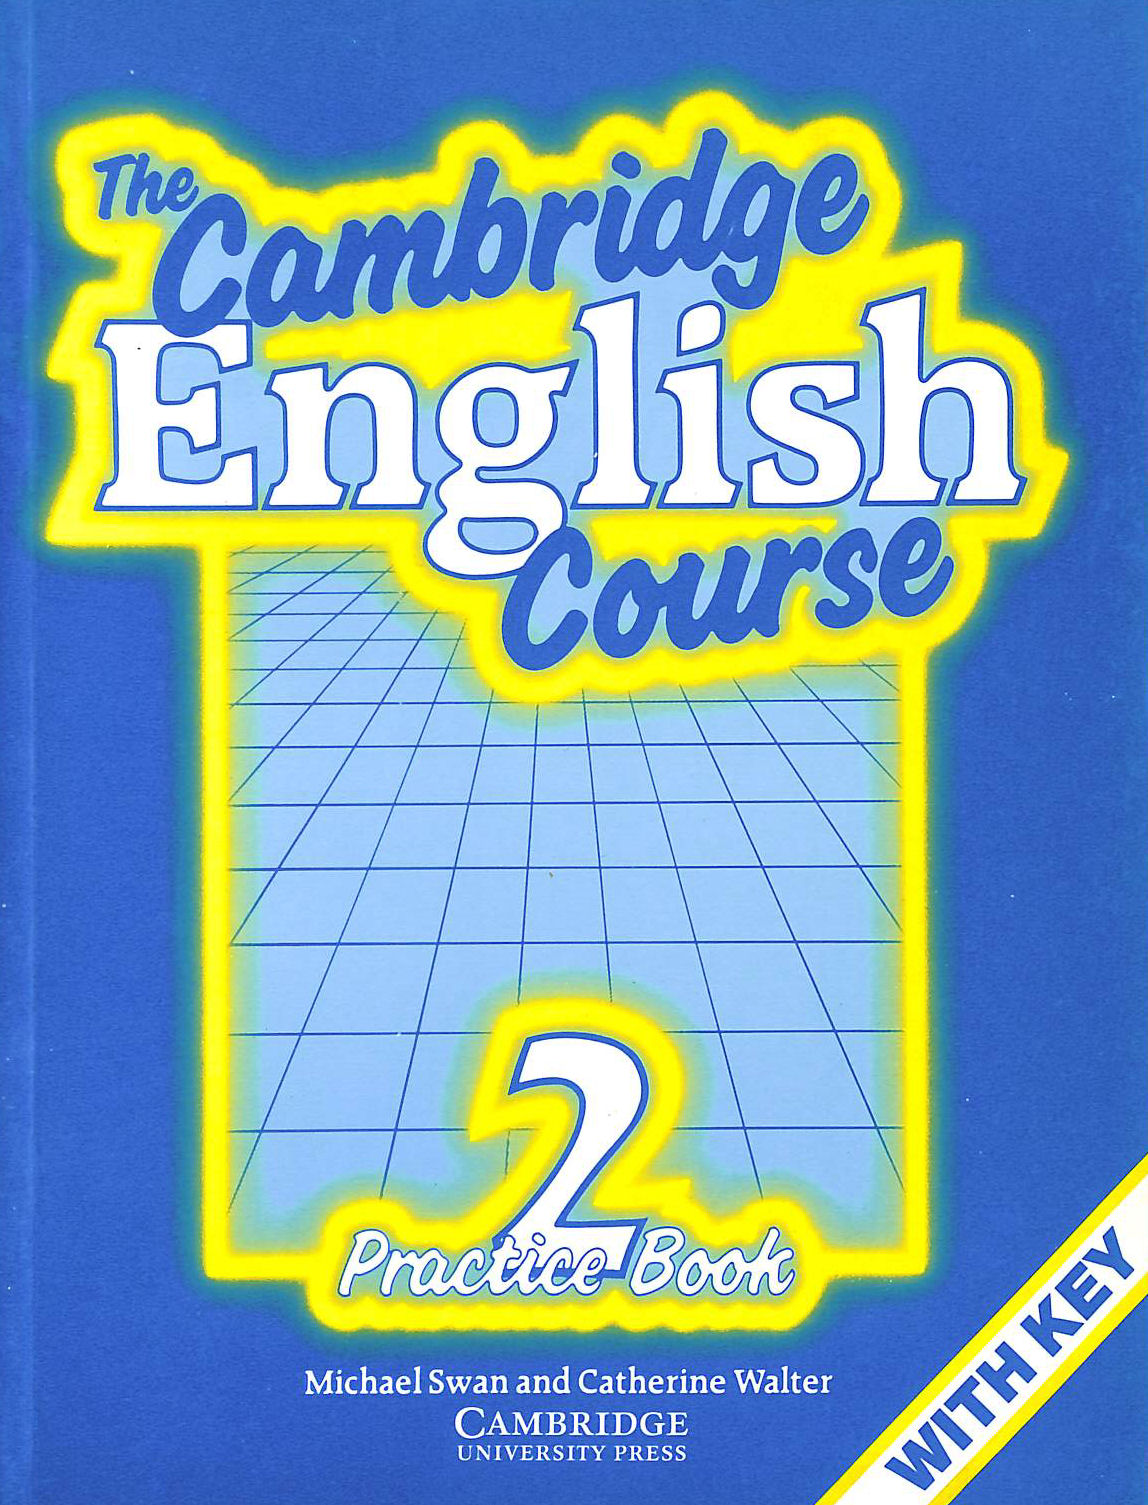 Image for The Cambridge English Course 2 Practice book with key: Practice Book, W.Key Bk. 2